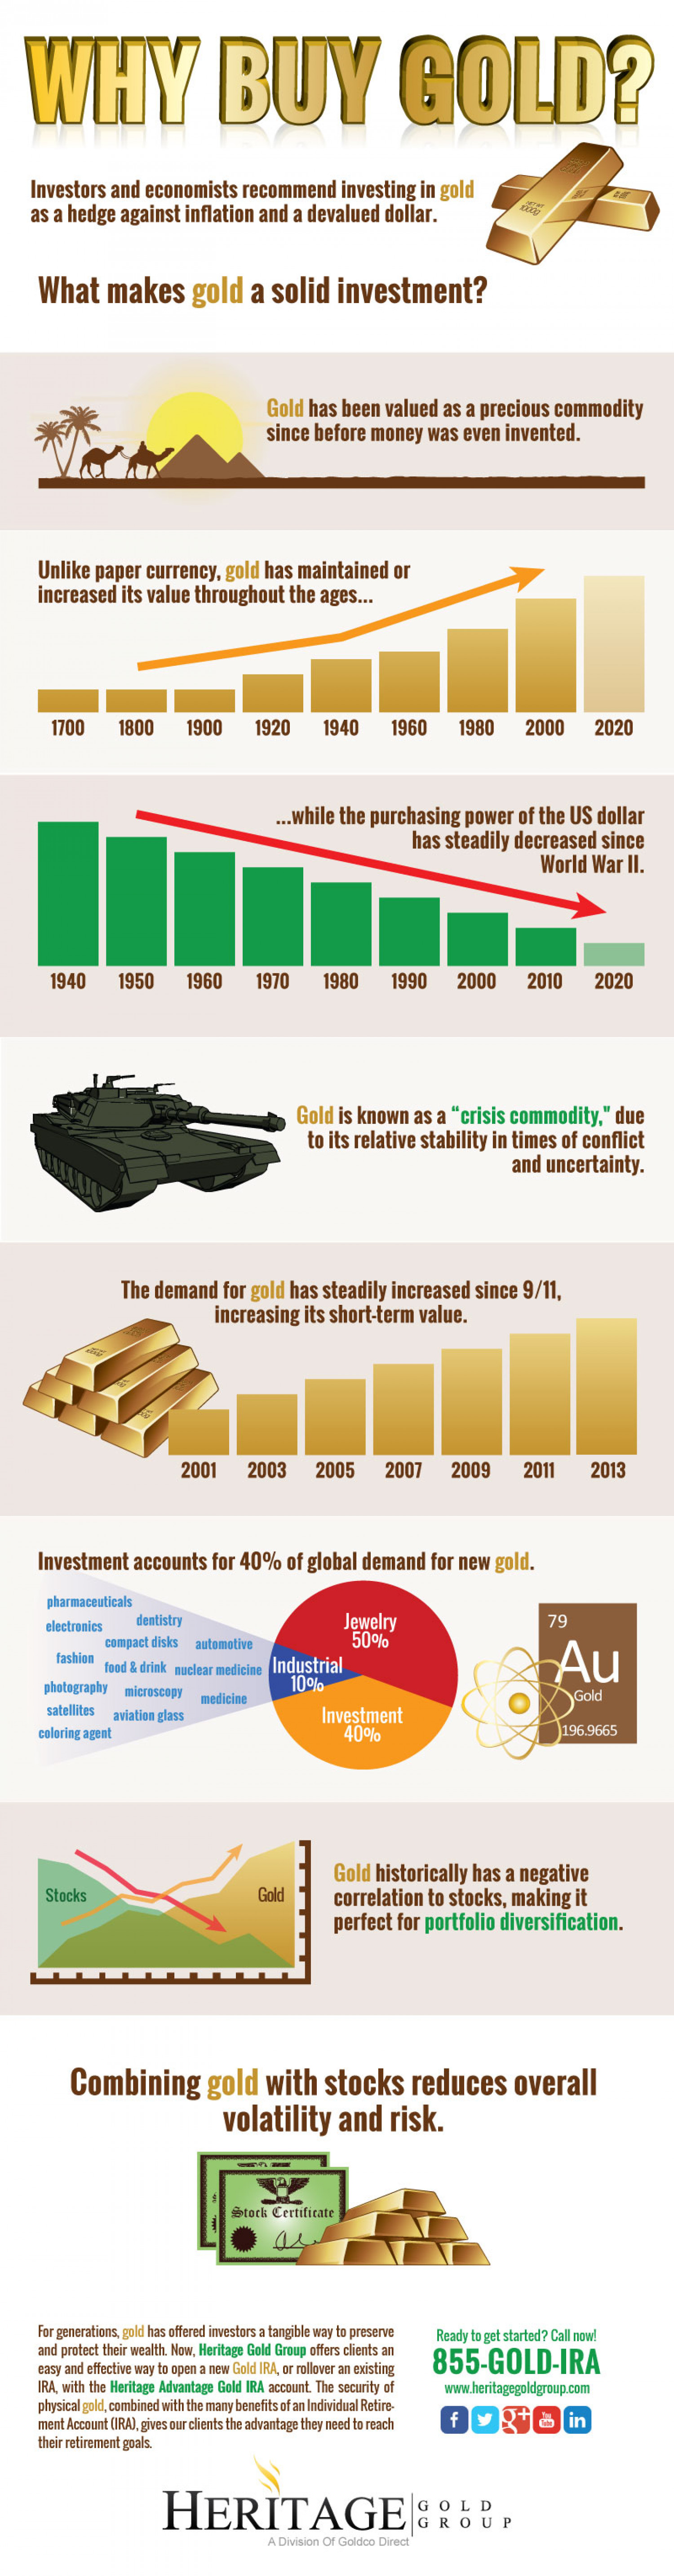 Why Buy Gold Infographic